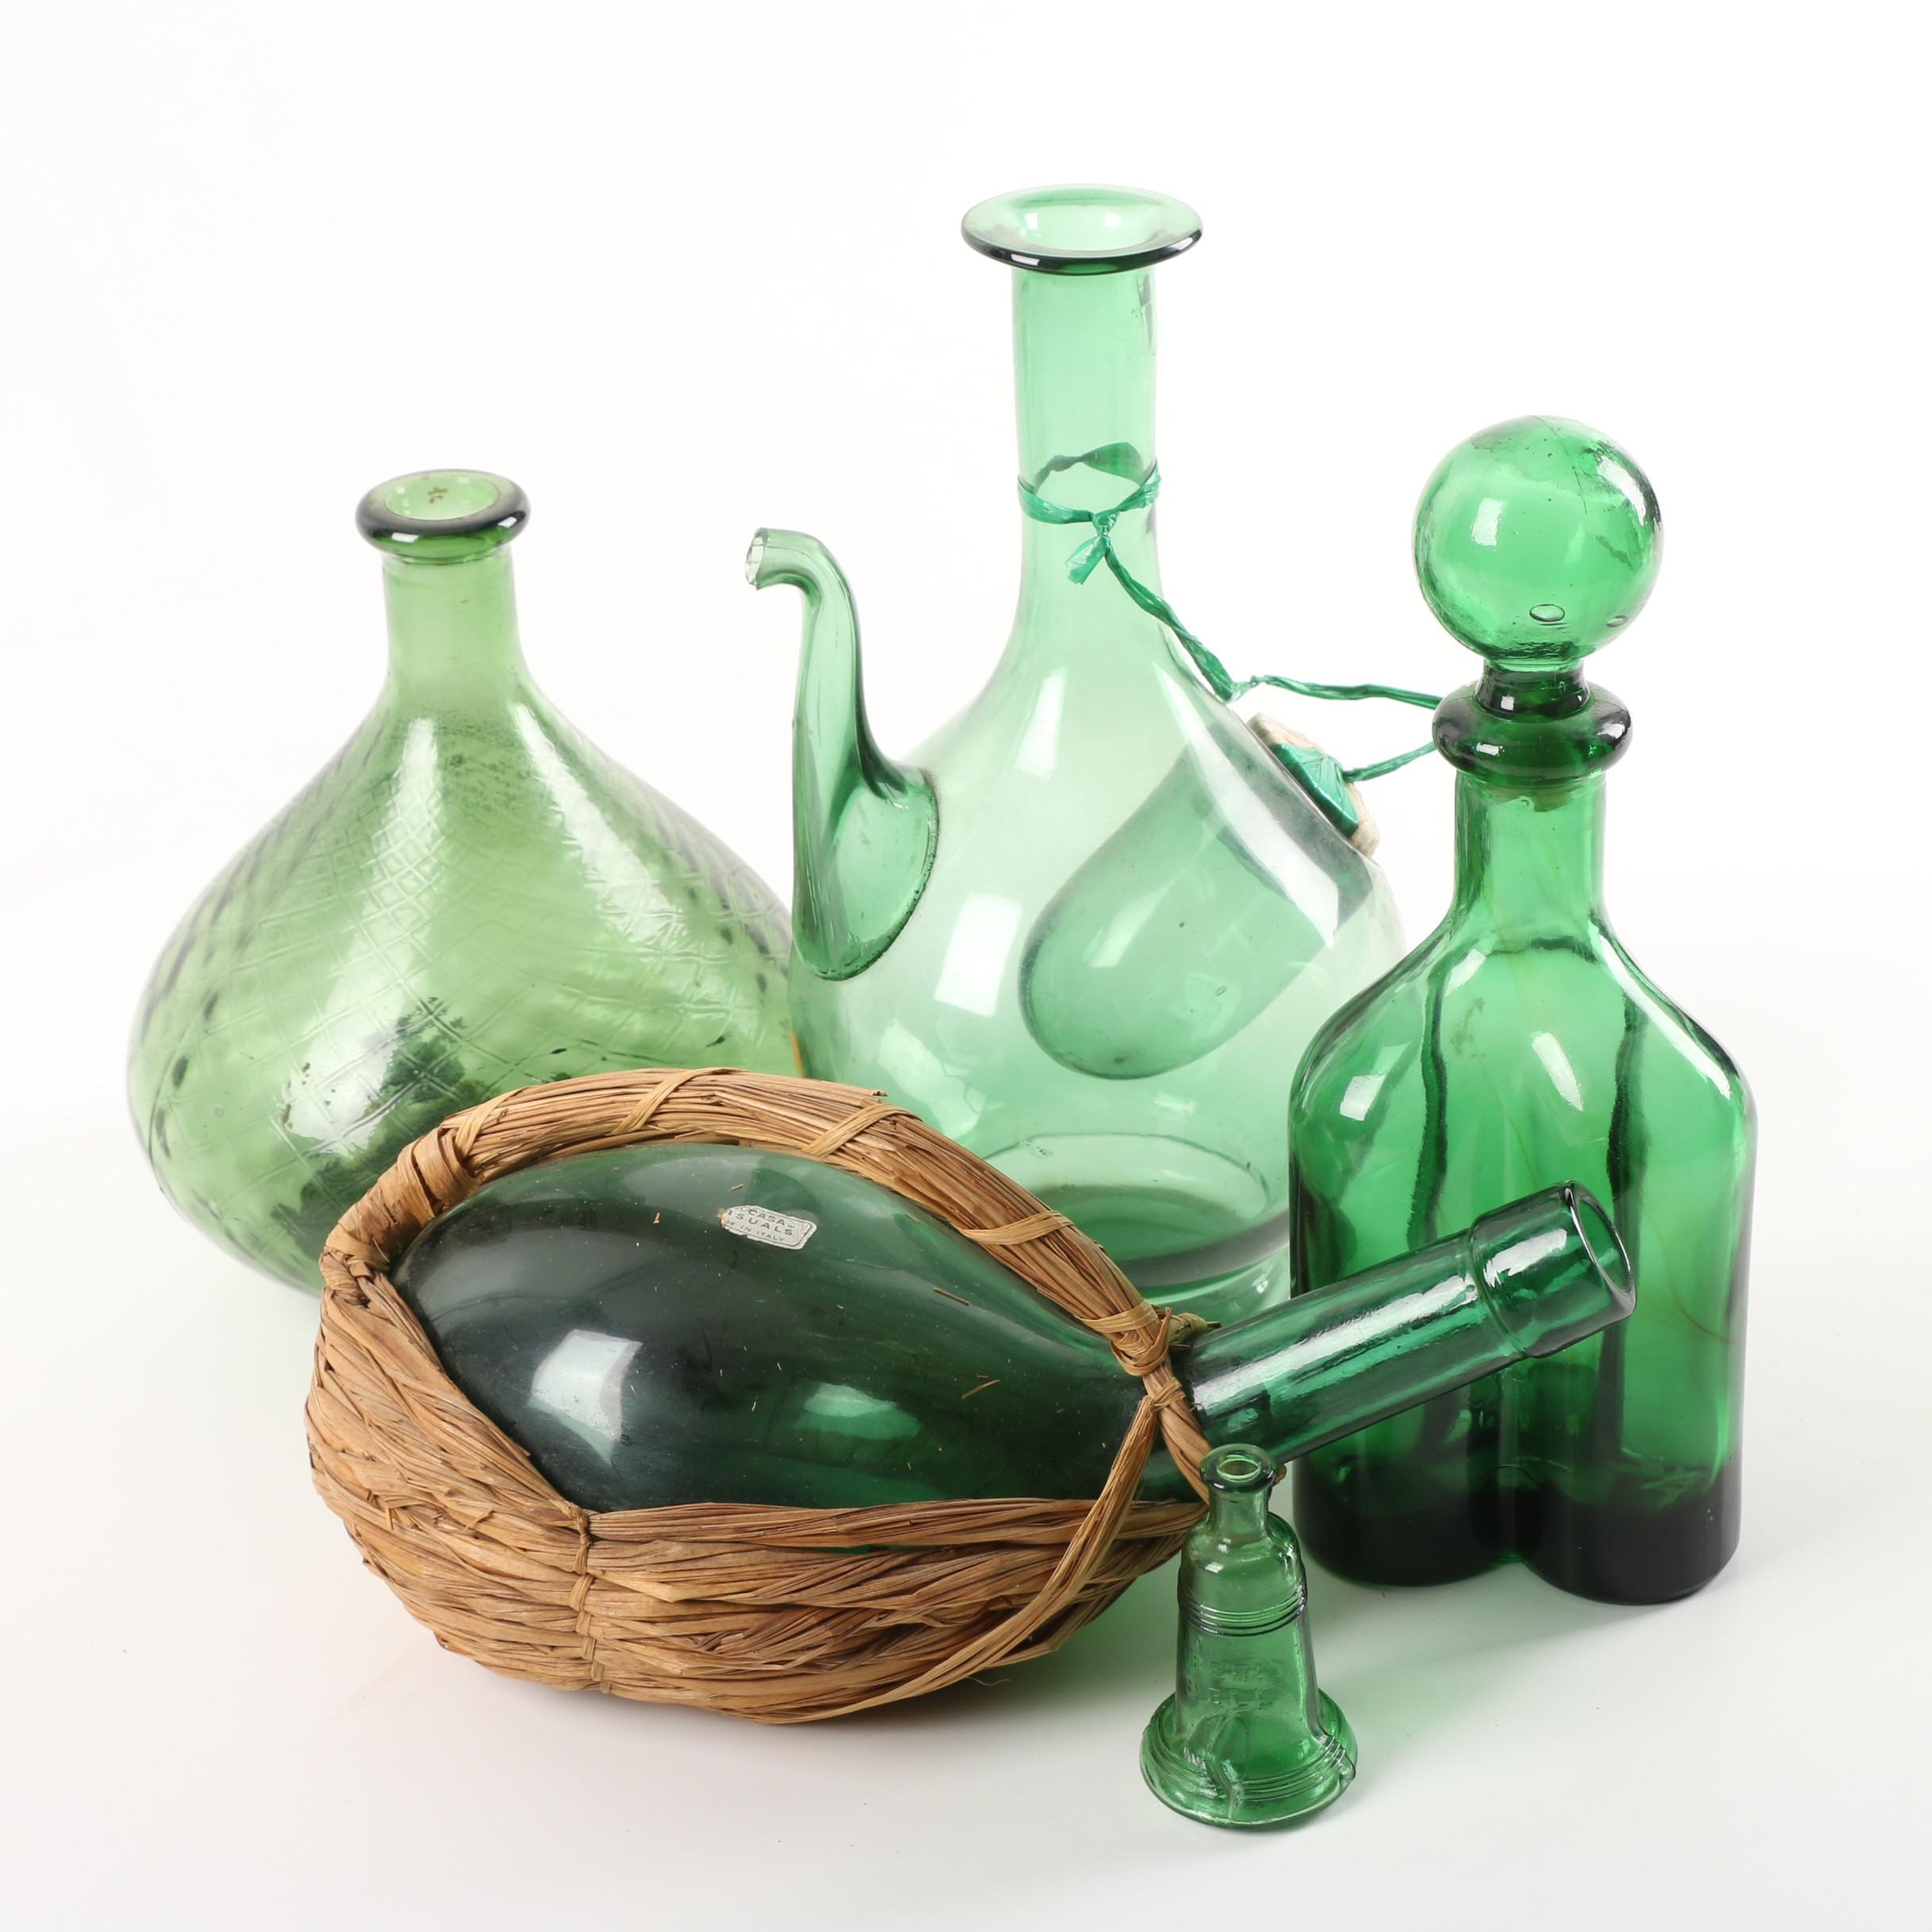 Vintage Green Glass Italian Wine Bottles, Decanters and Vases